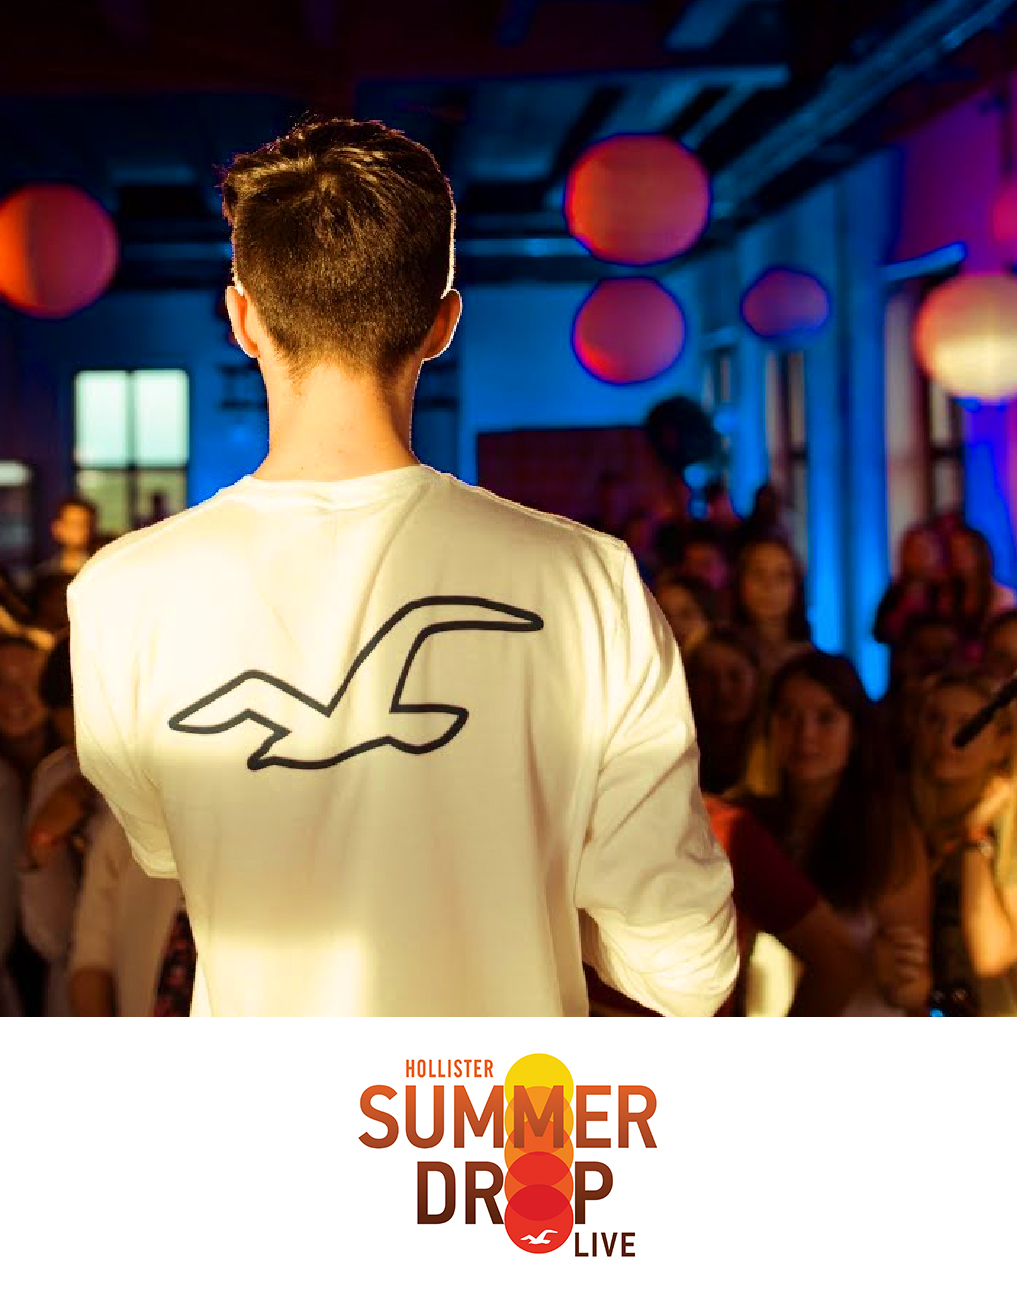 Luster Hashtag Printers - Hollister Summer Drop Live